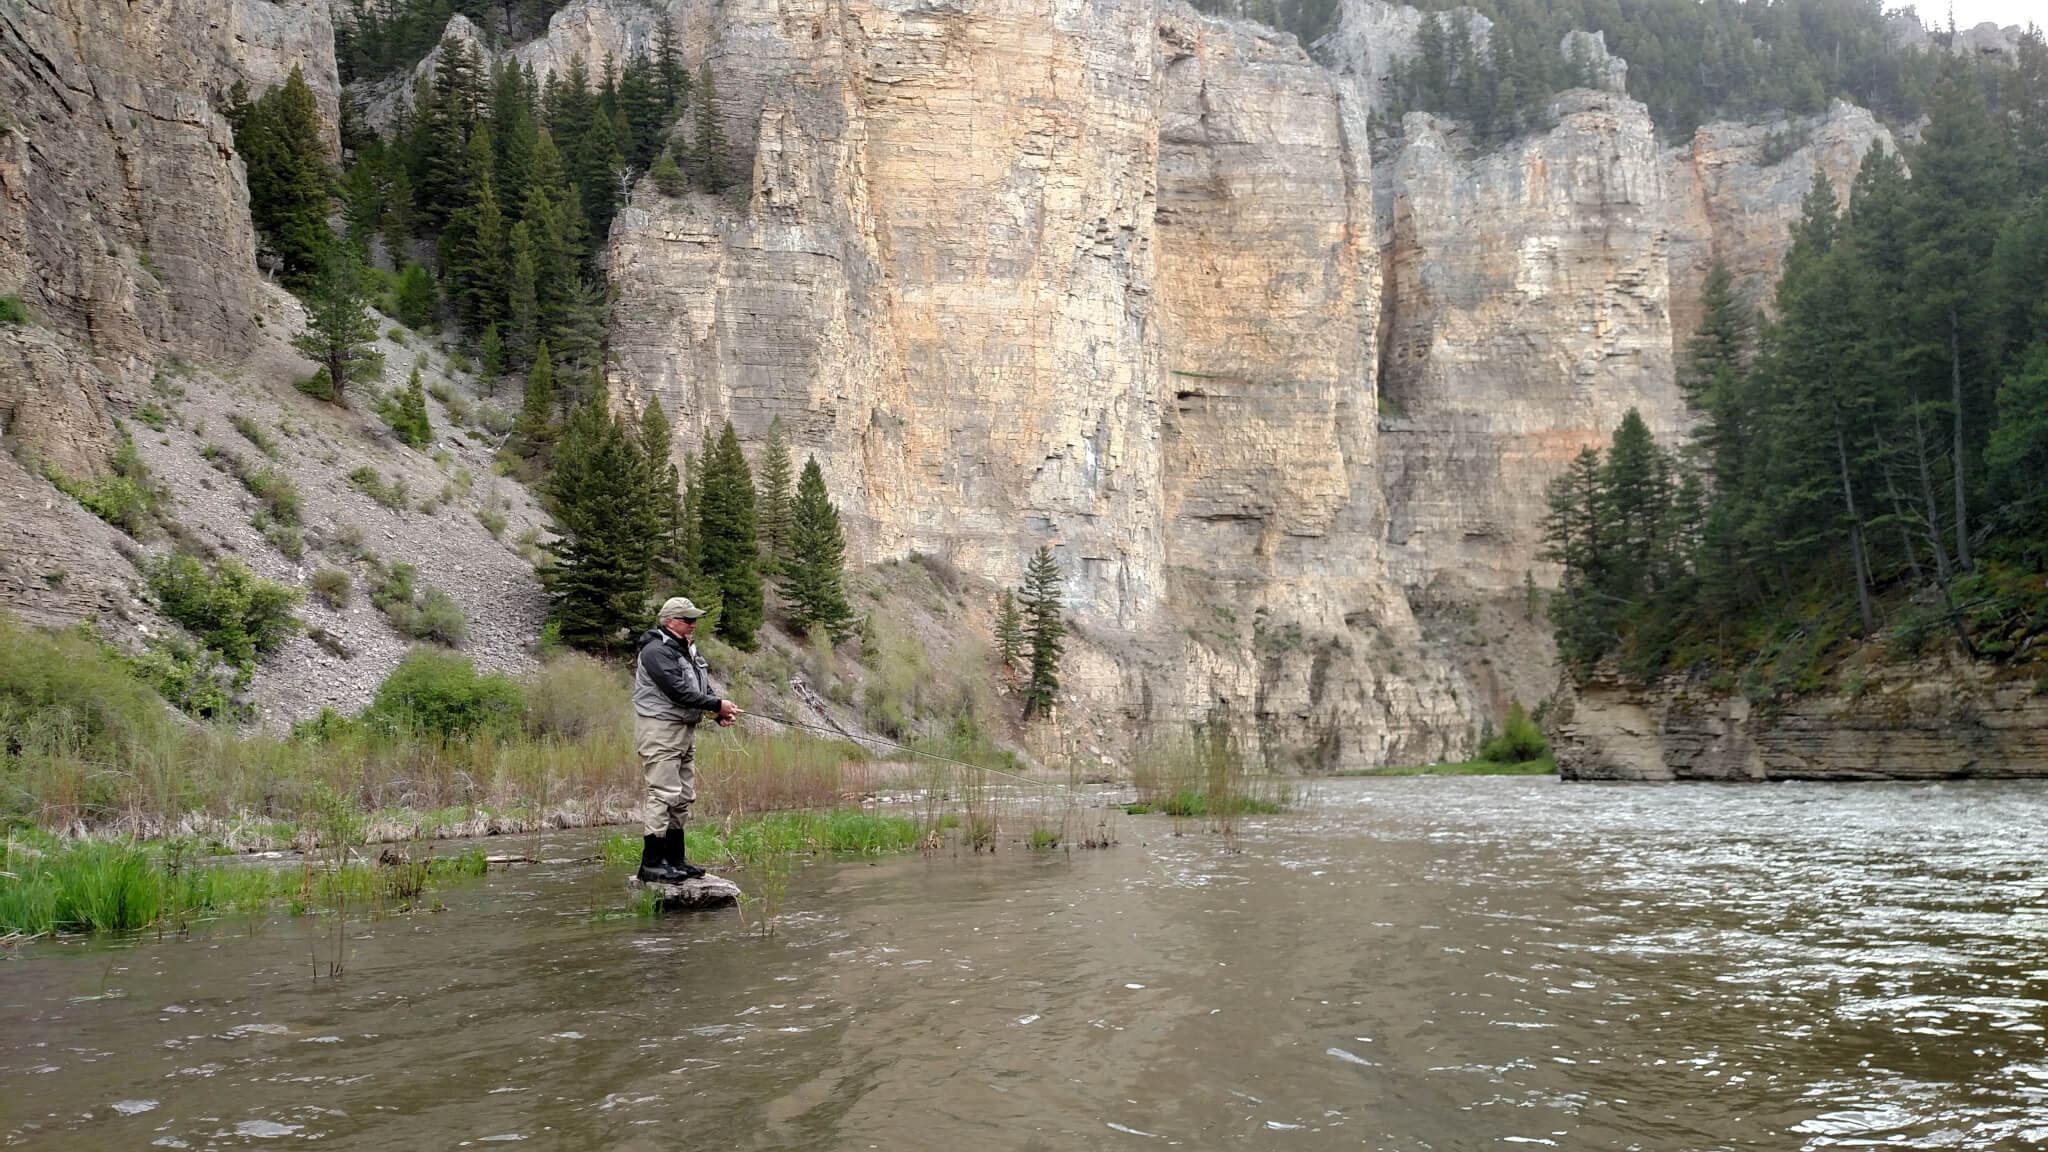 Montana Smith River fly fishing - Canyon Depths